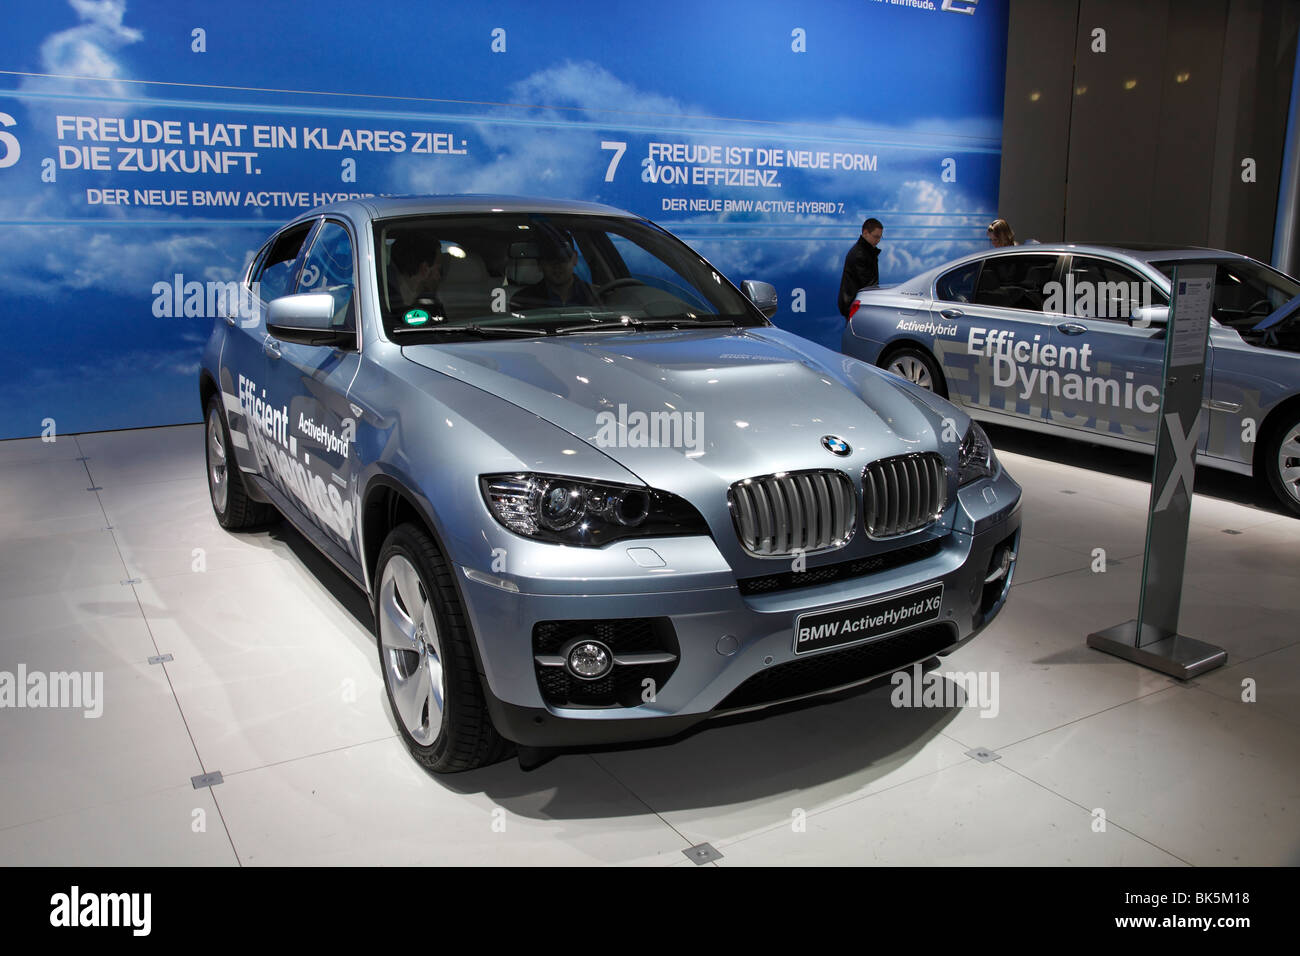 BMW ActiveHybrid X6 at the Auto Mobil International (AMI); Motor Show 2010 in Leipzig, Germany - Stock Image